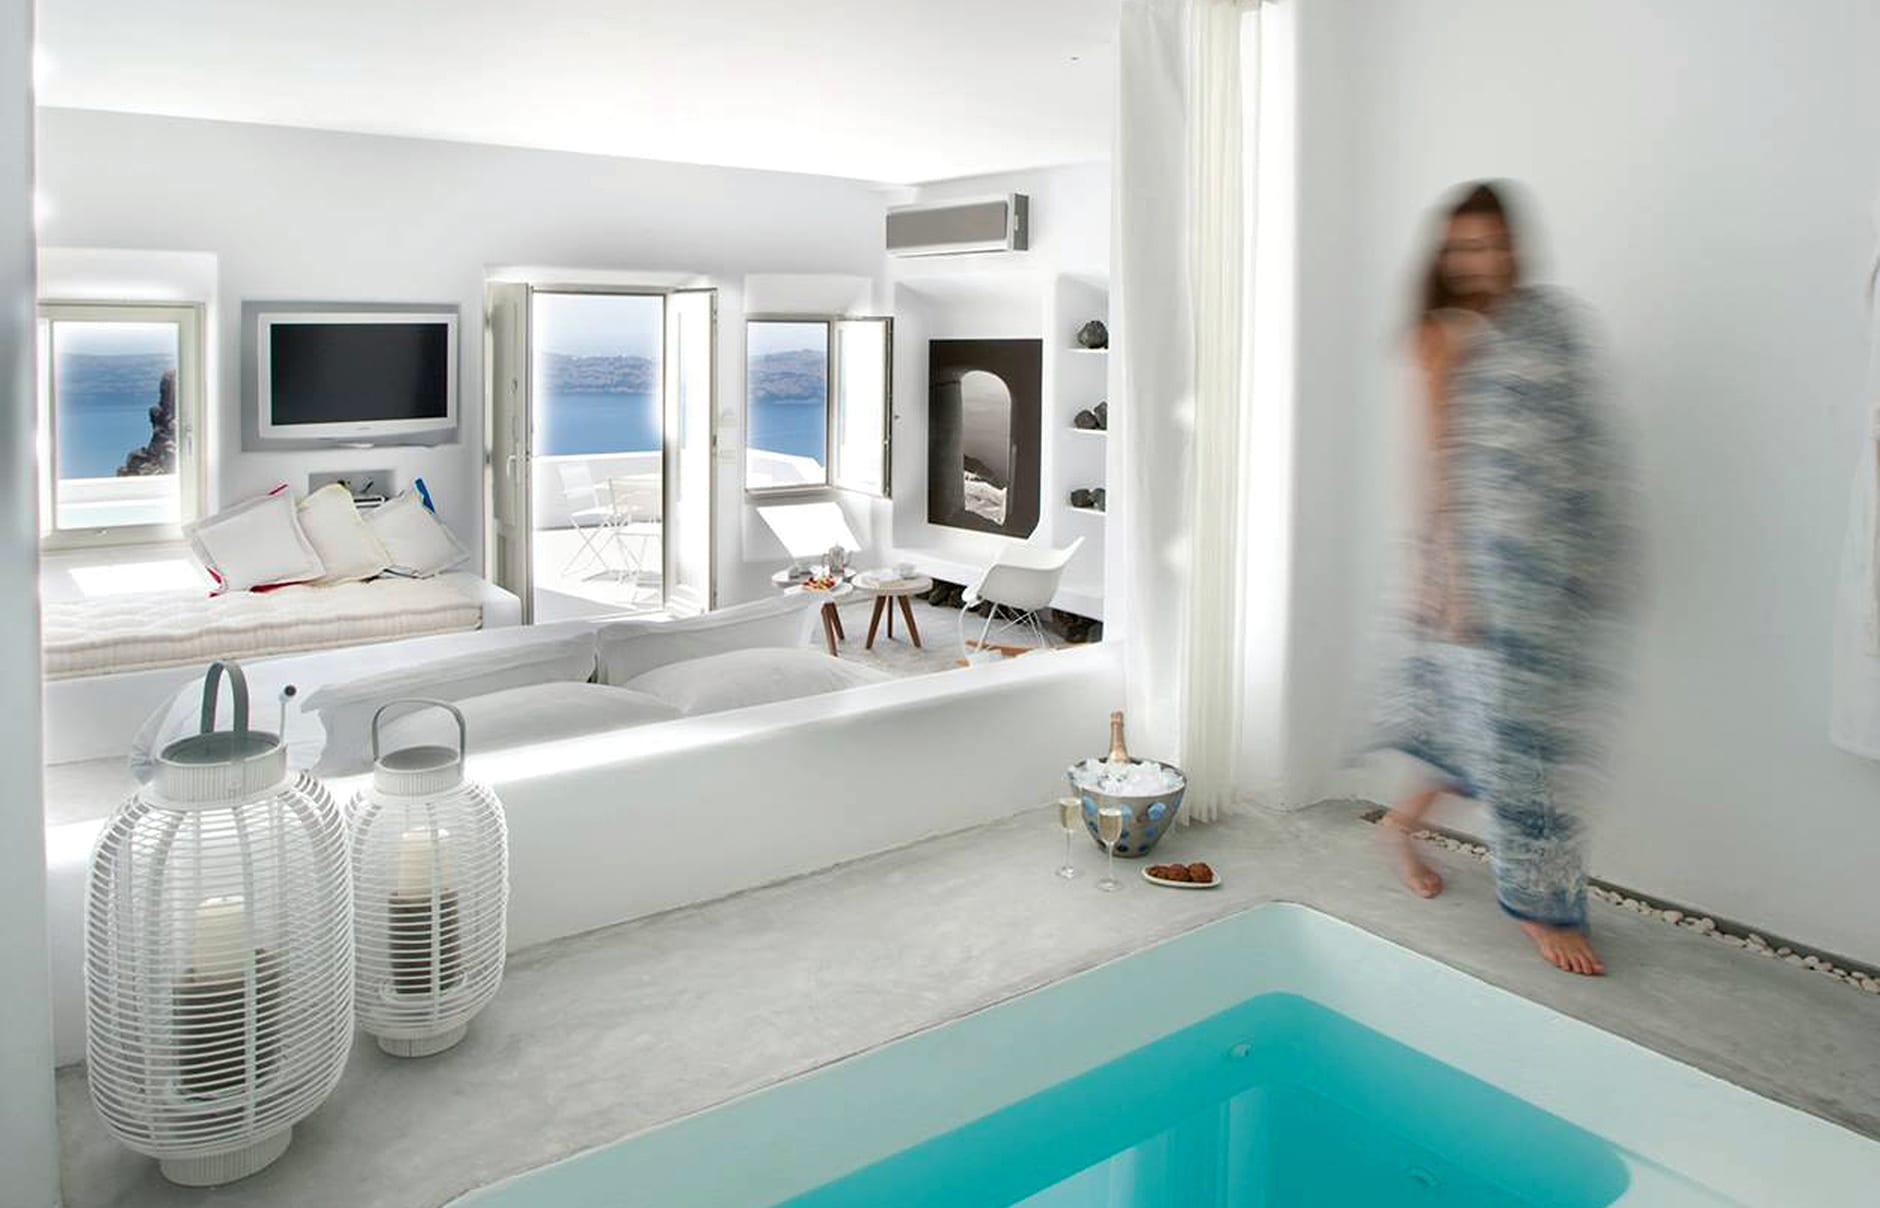 Grace Suite. Grace Hotel Santorini, Greece. Luxury Hotel Review by TravelPlusStyle. Photo © Auberge Resorts Collection